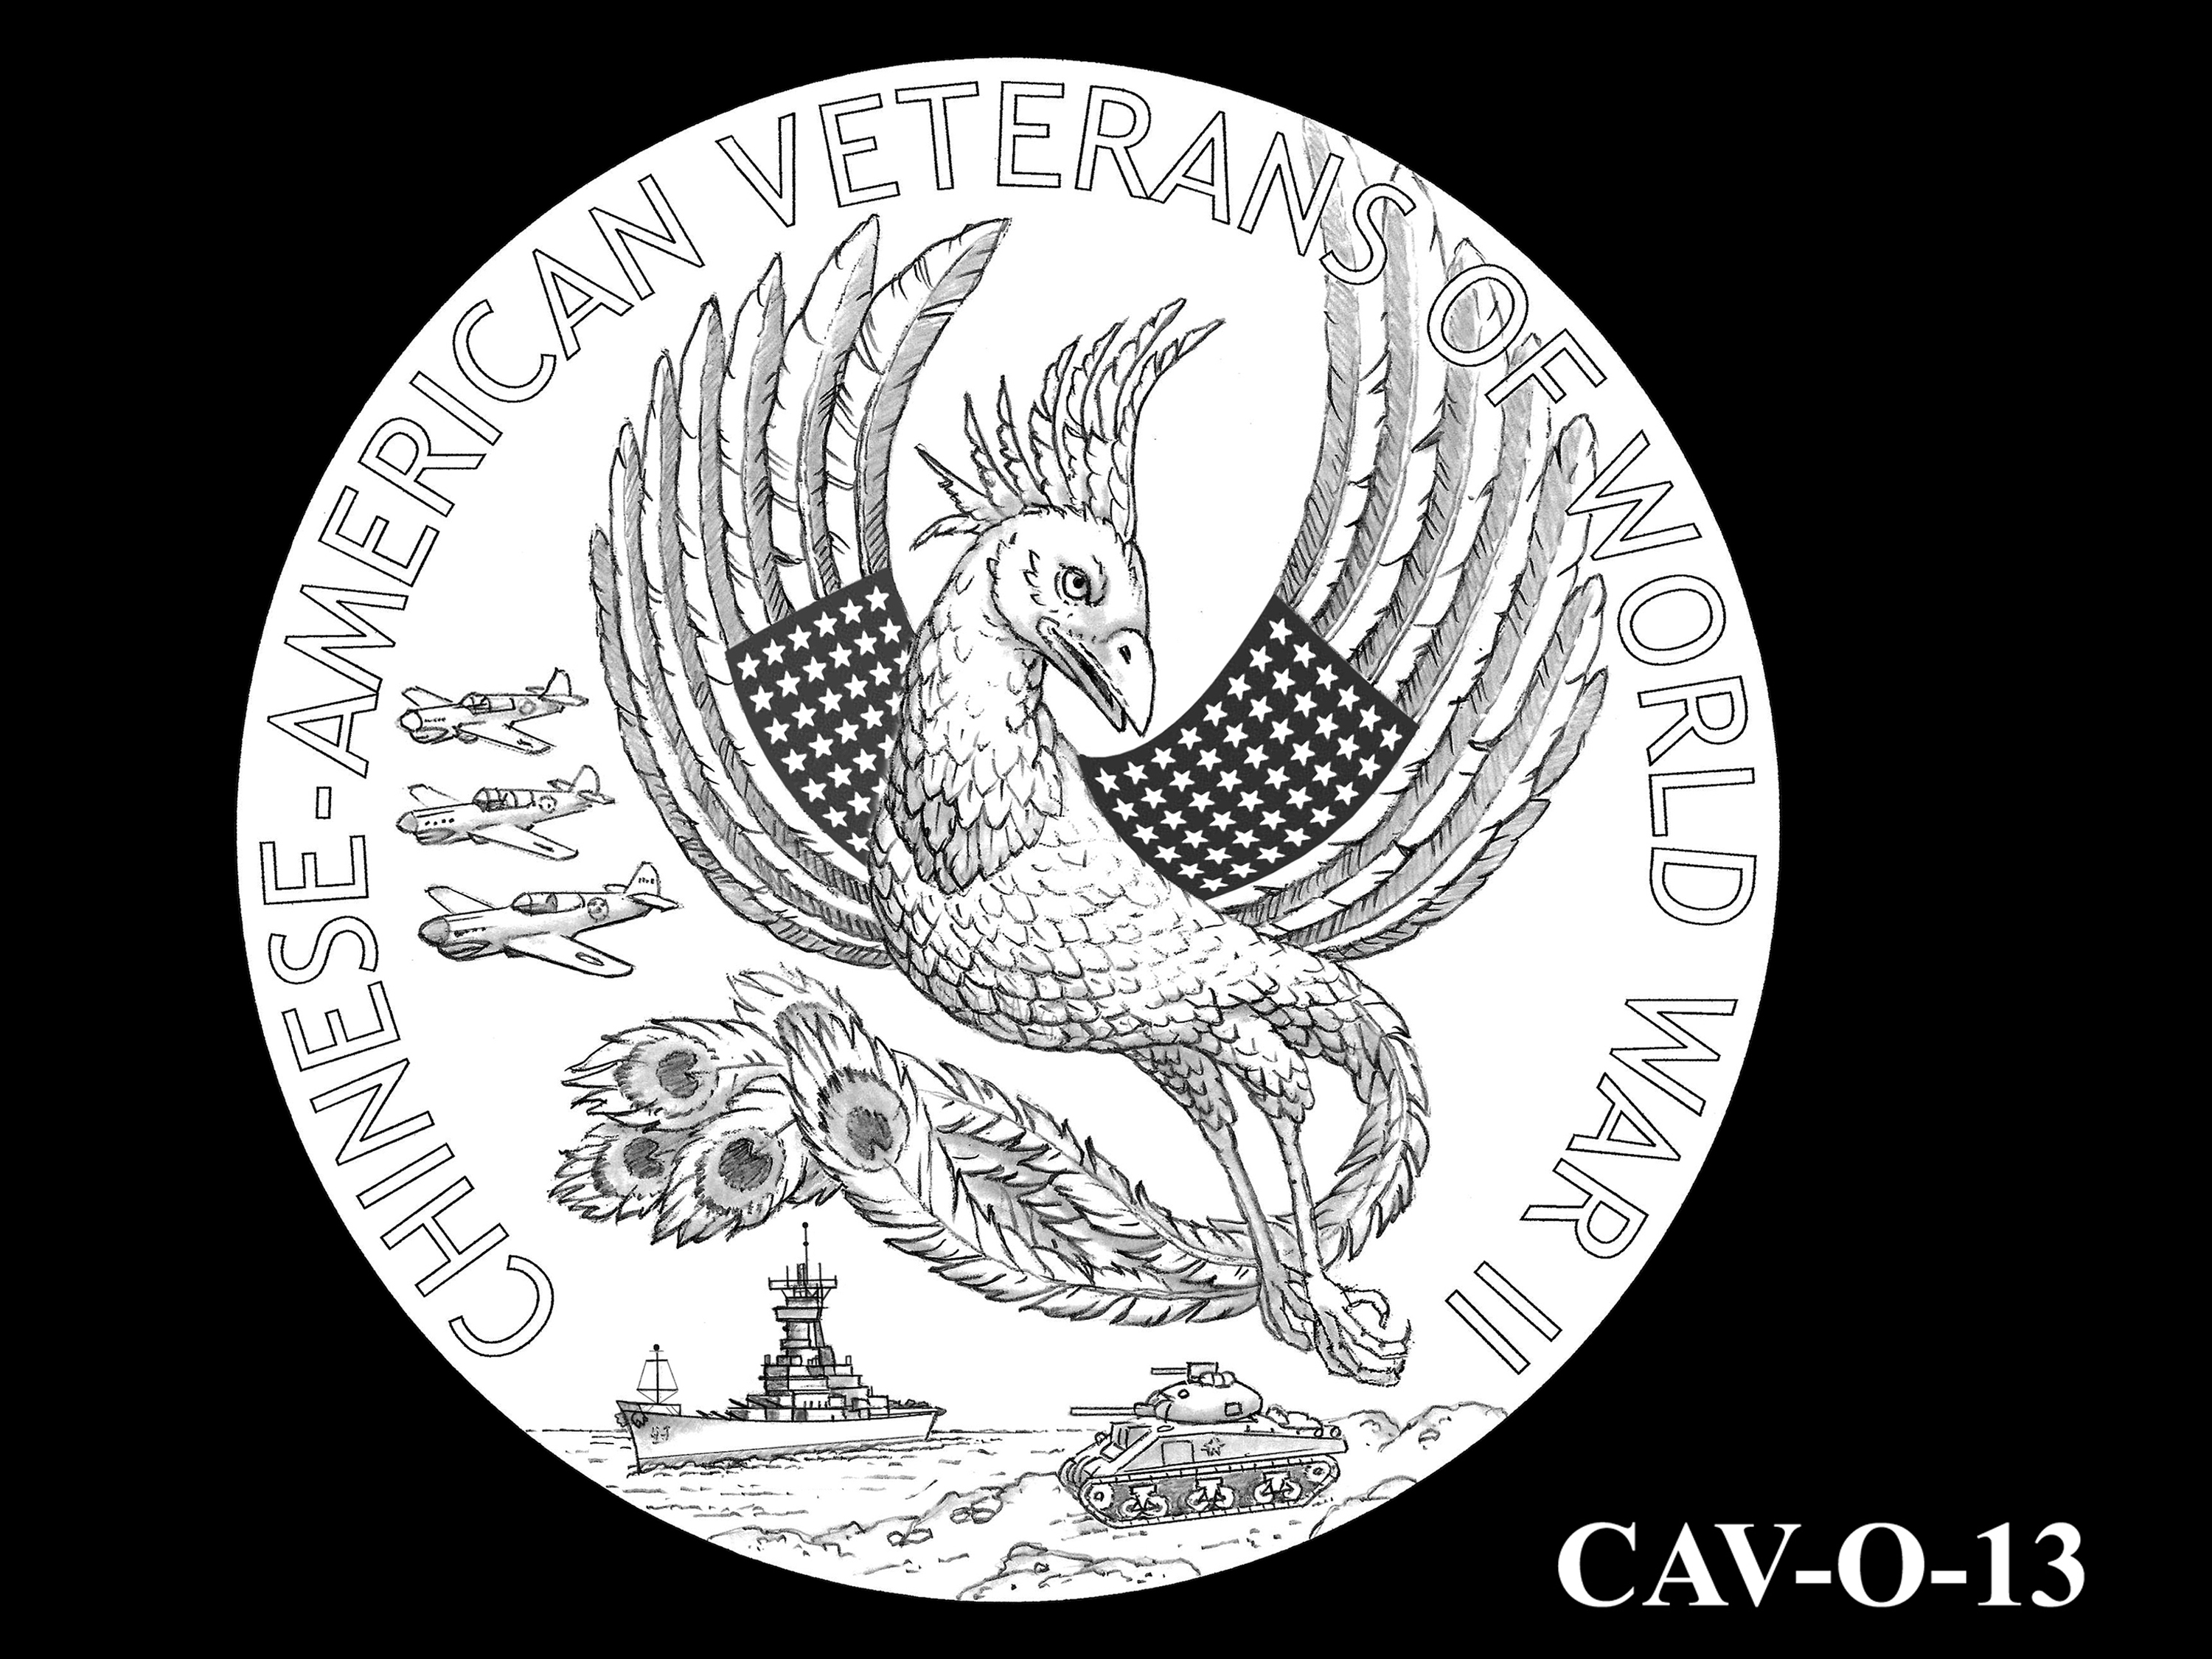 CAV-O-13 -- Chinese-American Veterans of World War II Congressional Gold Medal - Obverse